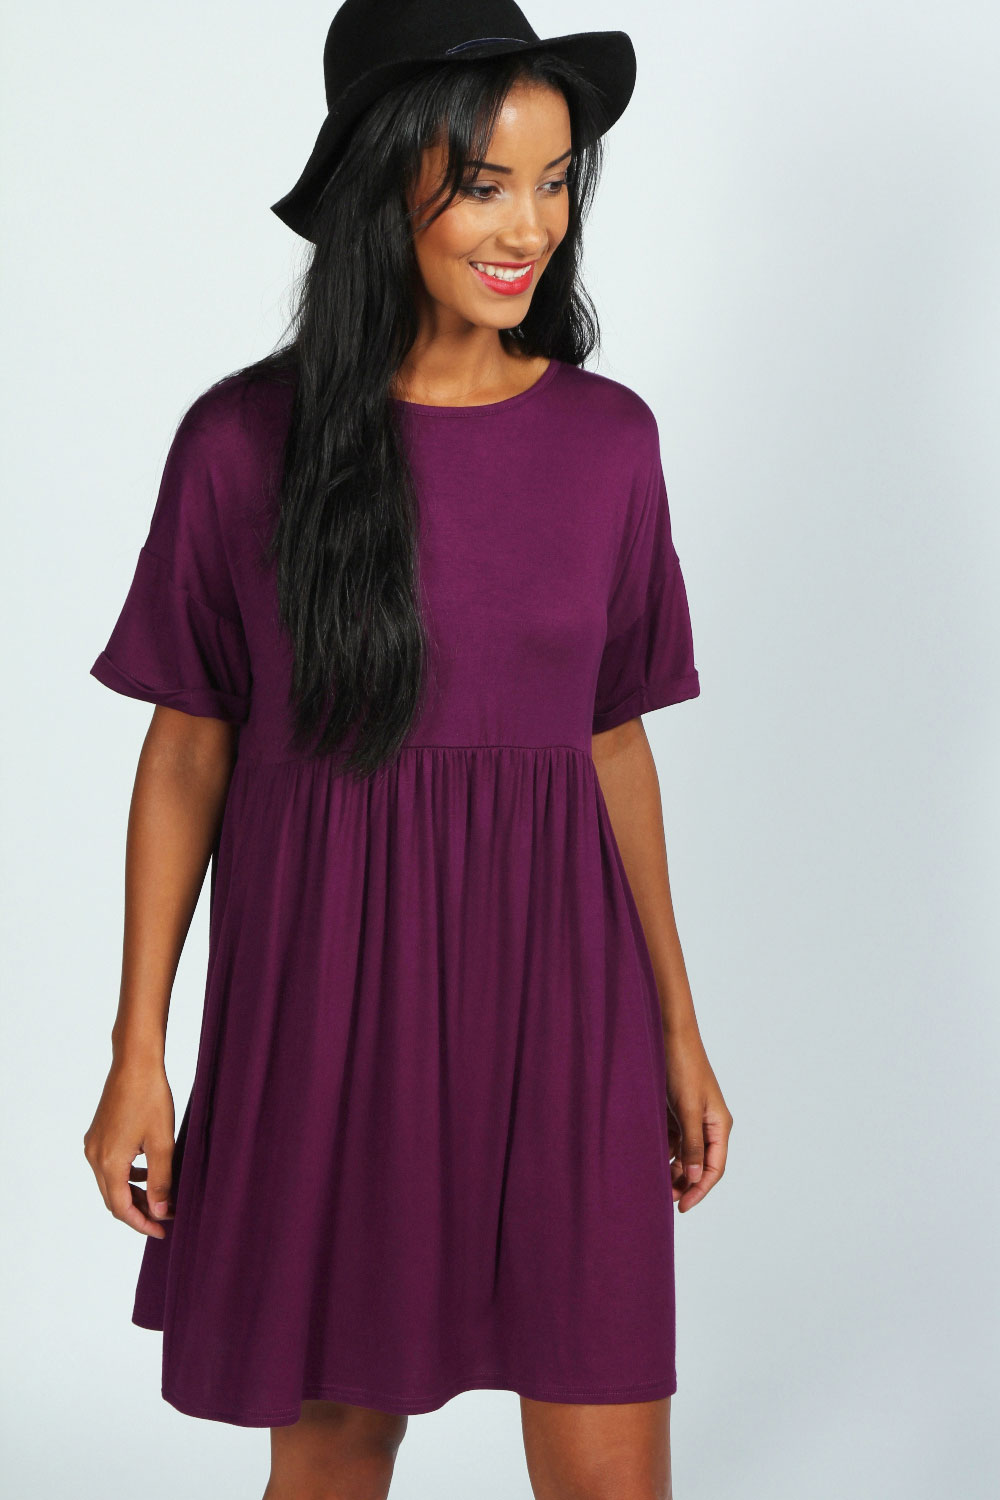 Boohoo-Womens-Ladies-Ruby-Oversized-Short-Sleeve-Smock-Dress